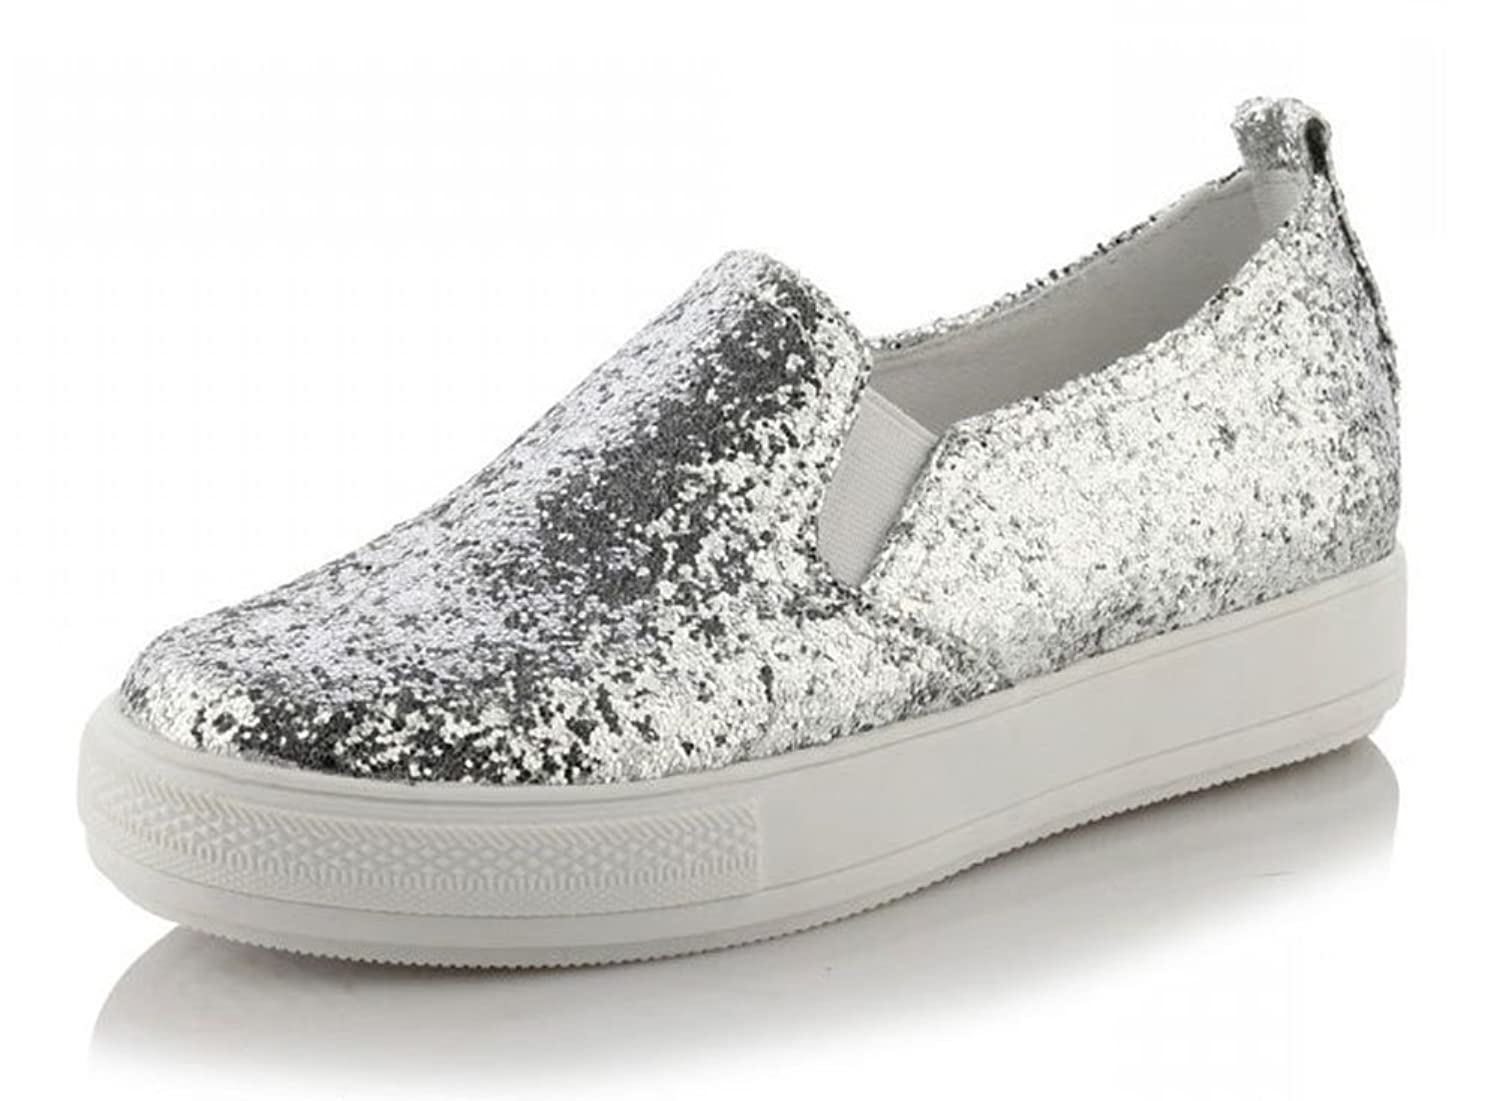 7e7d06b5cad Aisun Women s Stylish Sparkly Sequin Round Toe Thick Sole Platform Sneakers  Flats Slip On Loafers Skate Shoes